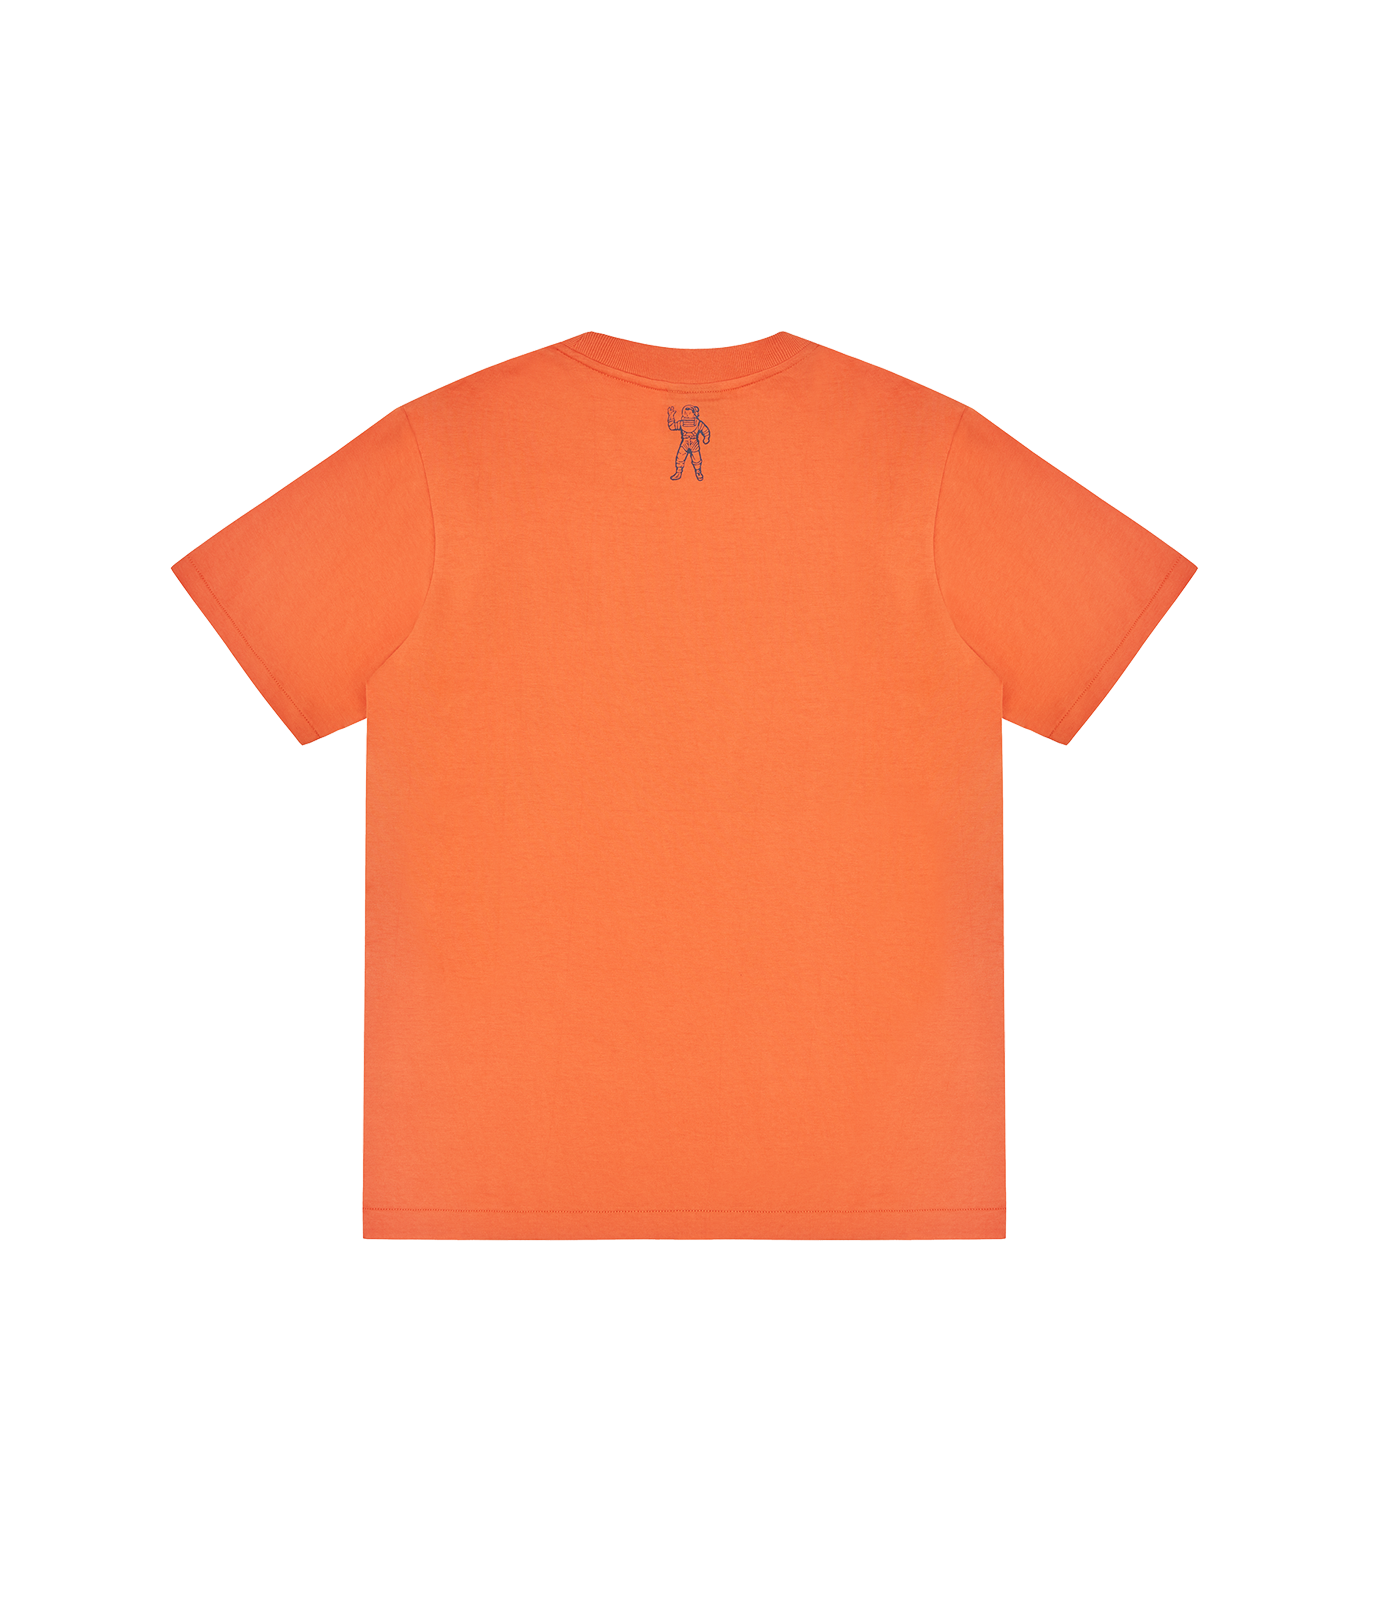 EU GREETINGS LOGO T-SHIRT - ORANGE